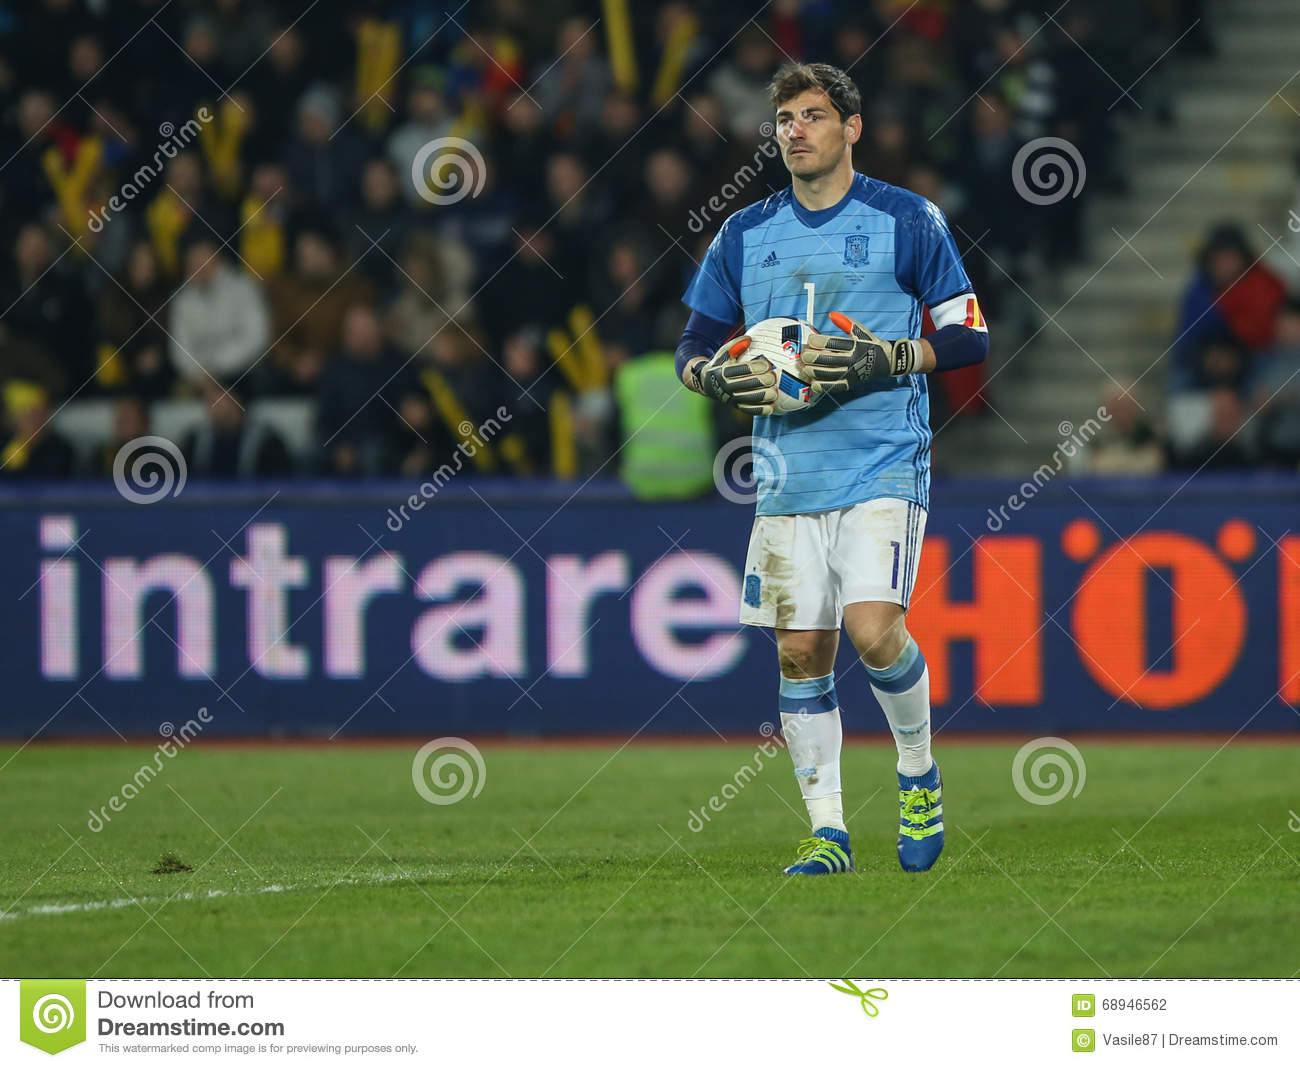 9d2e113aa5a Spain s goalkeeper Iker Casillas in action during a friendly game Romania  vs. Spain